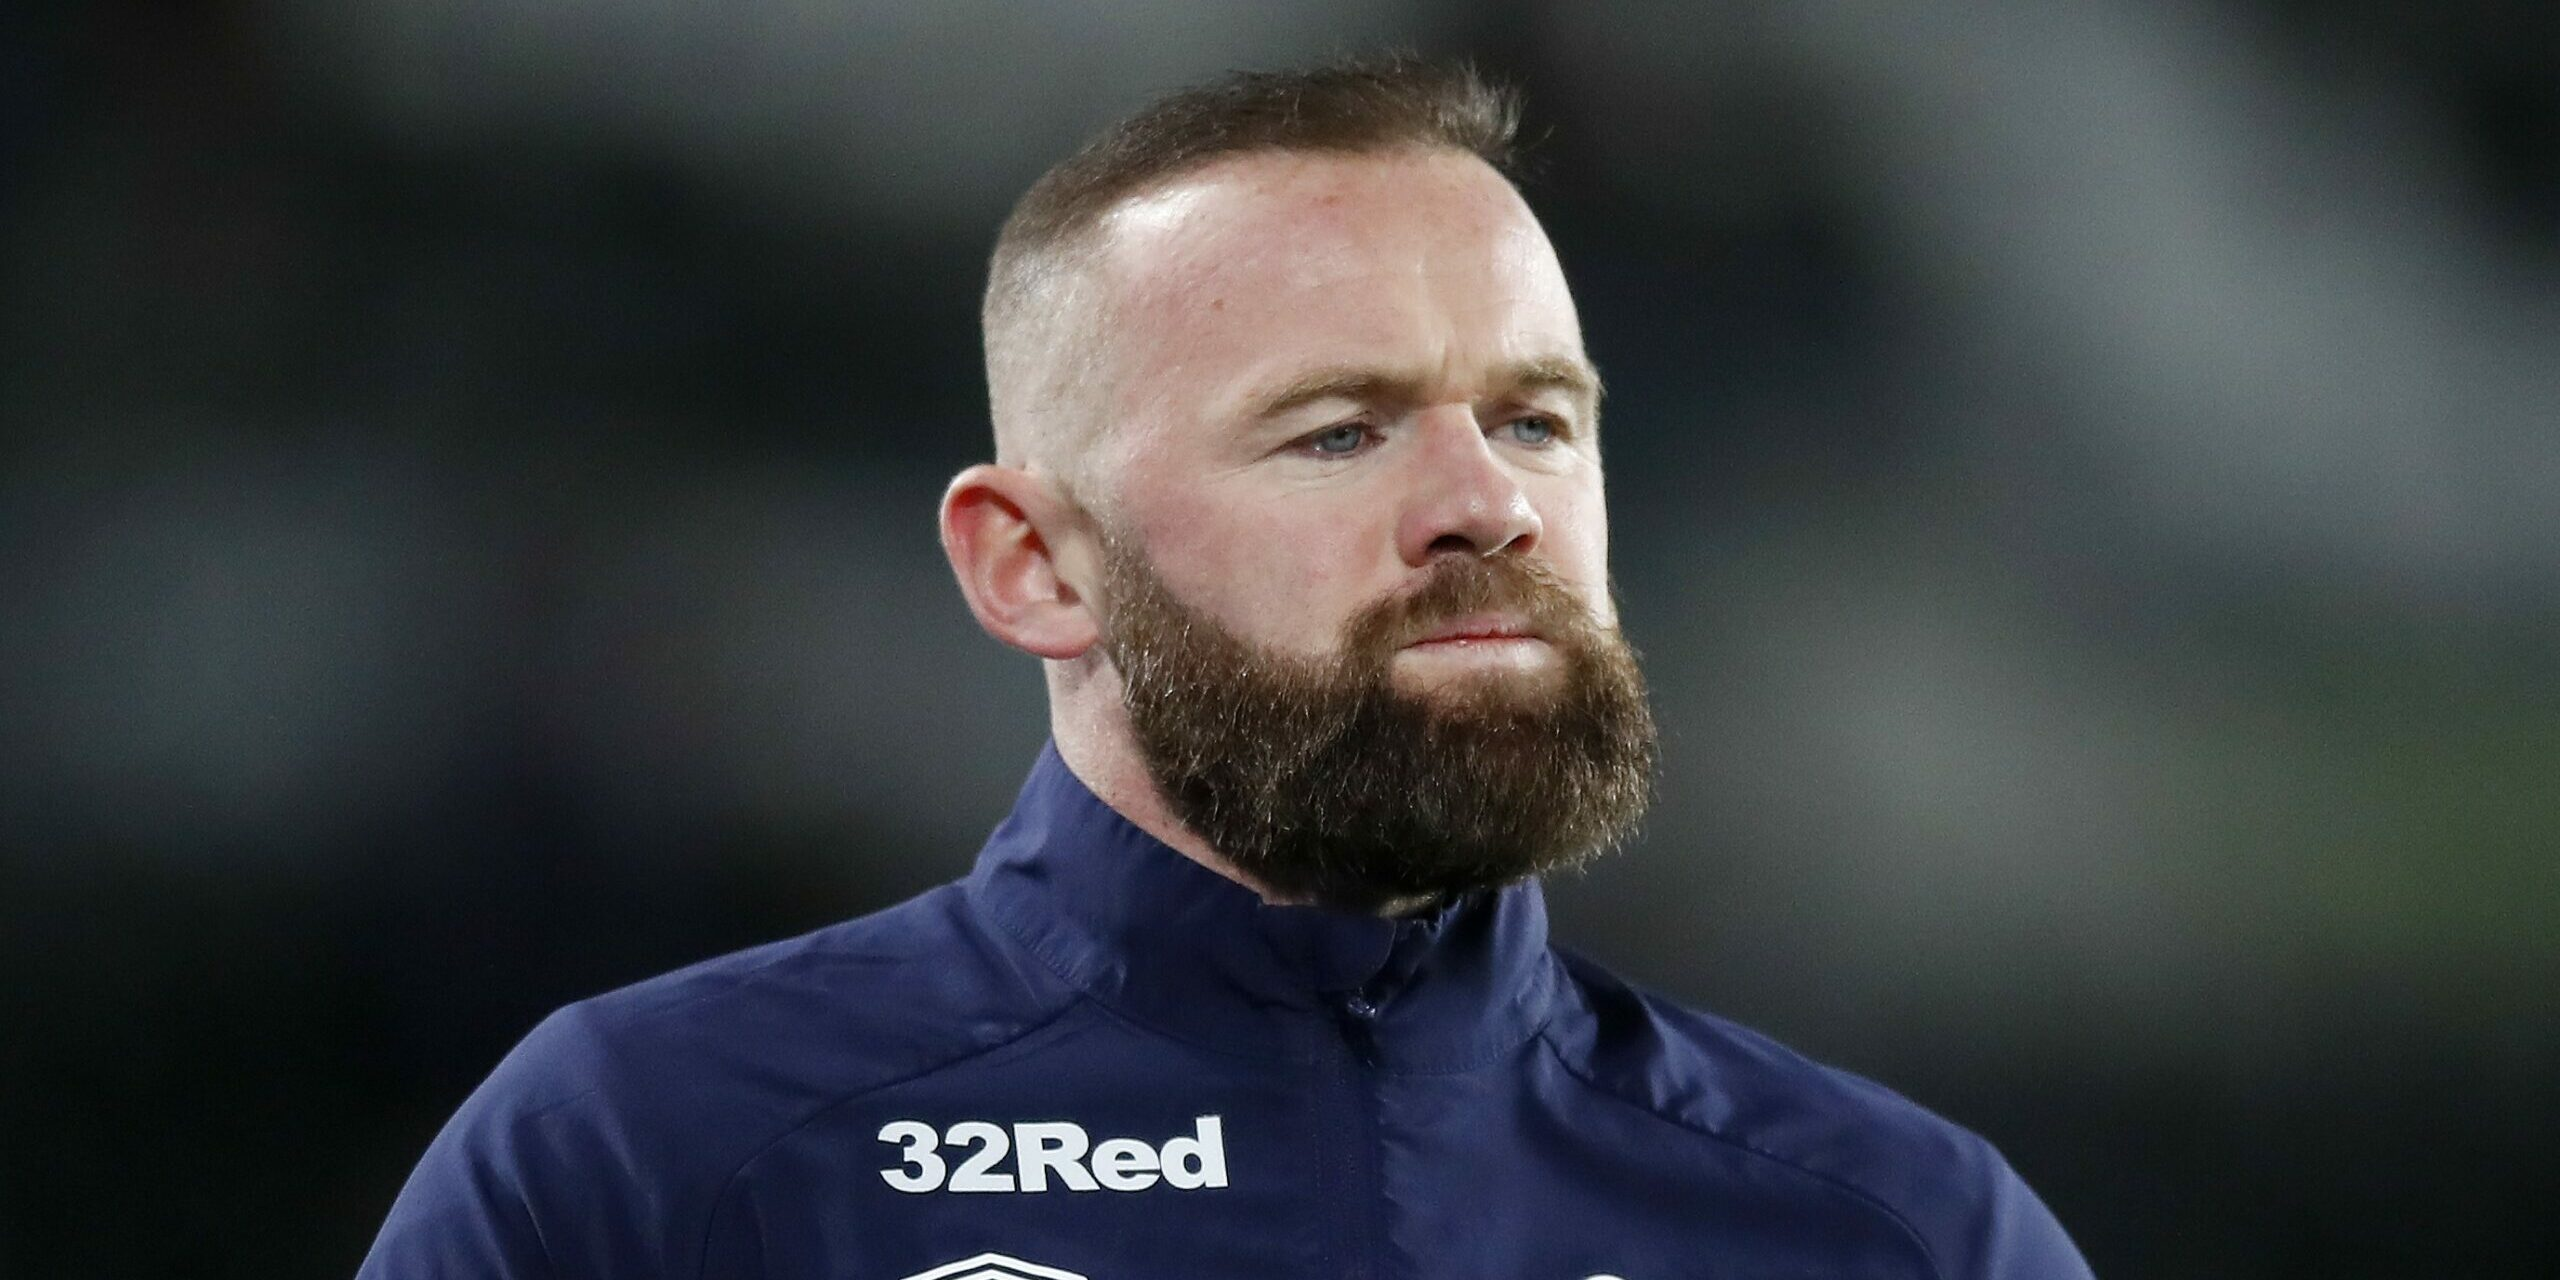 05 March 2020, England, Derby: Derby County's Wayne Rooney pictured prior to the start of the English FA Cup fifth round soccer match between Derby County and Manchester United at Pride Park. Photo: Martin Rickett/PA Wire/dpa   (Foto de ARCHIVO) 5/3/2020 ONLY FOR USE IN SPAIN